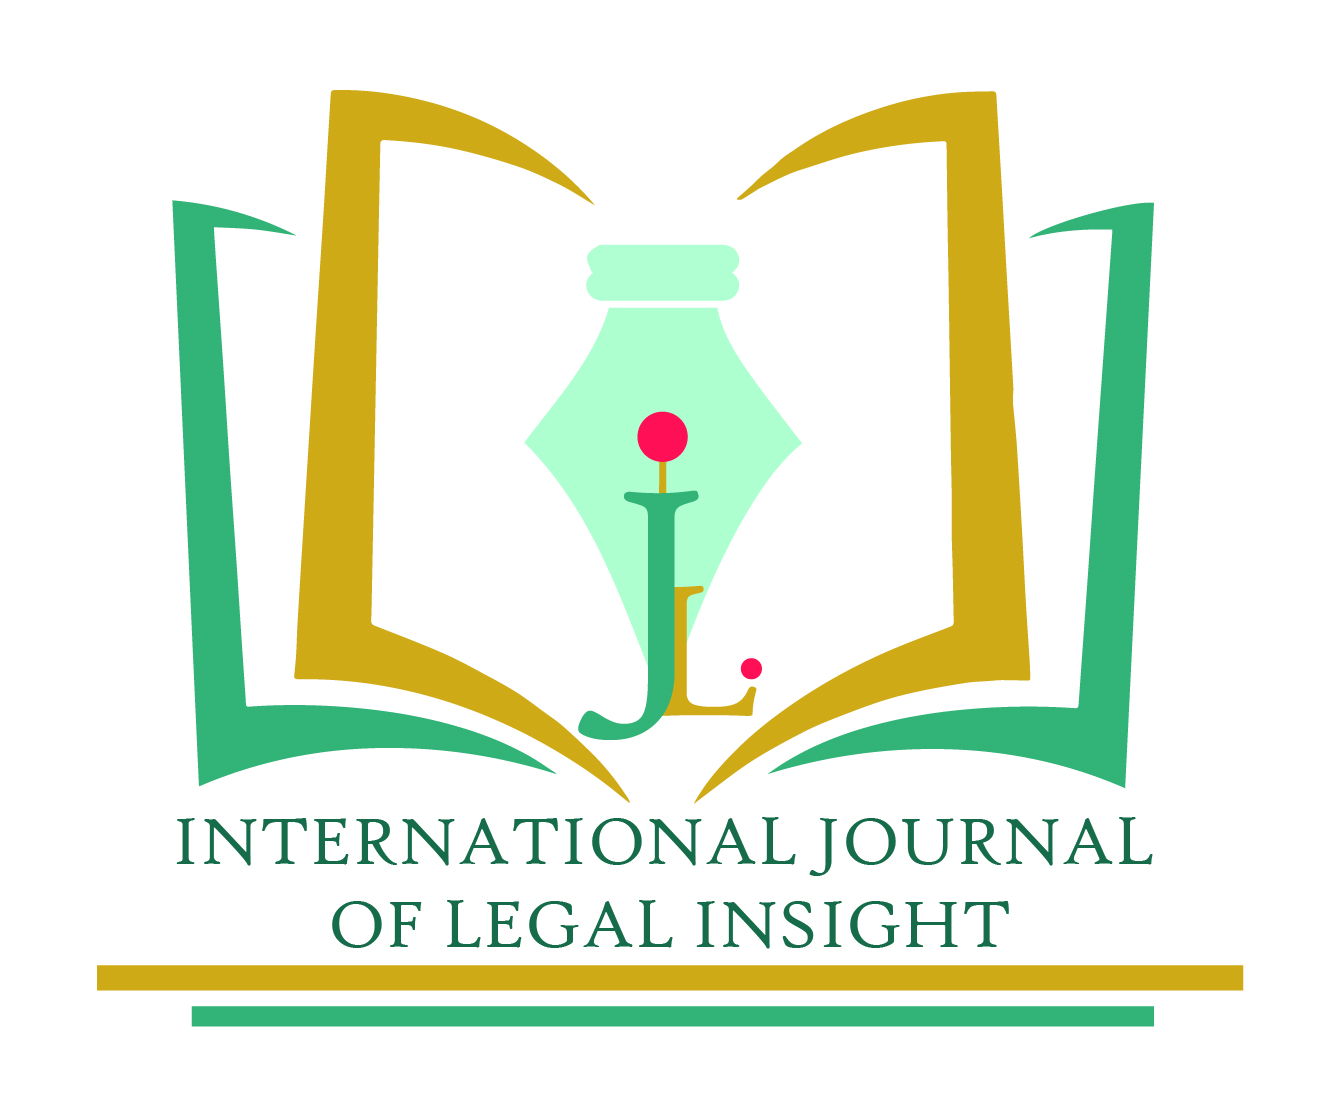 Call for Papers: International Journal of Legal Insight [ISSN: 2456-3595], Volume I Issue 4 (IJLI): Submit by July 25